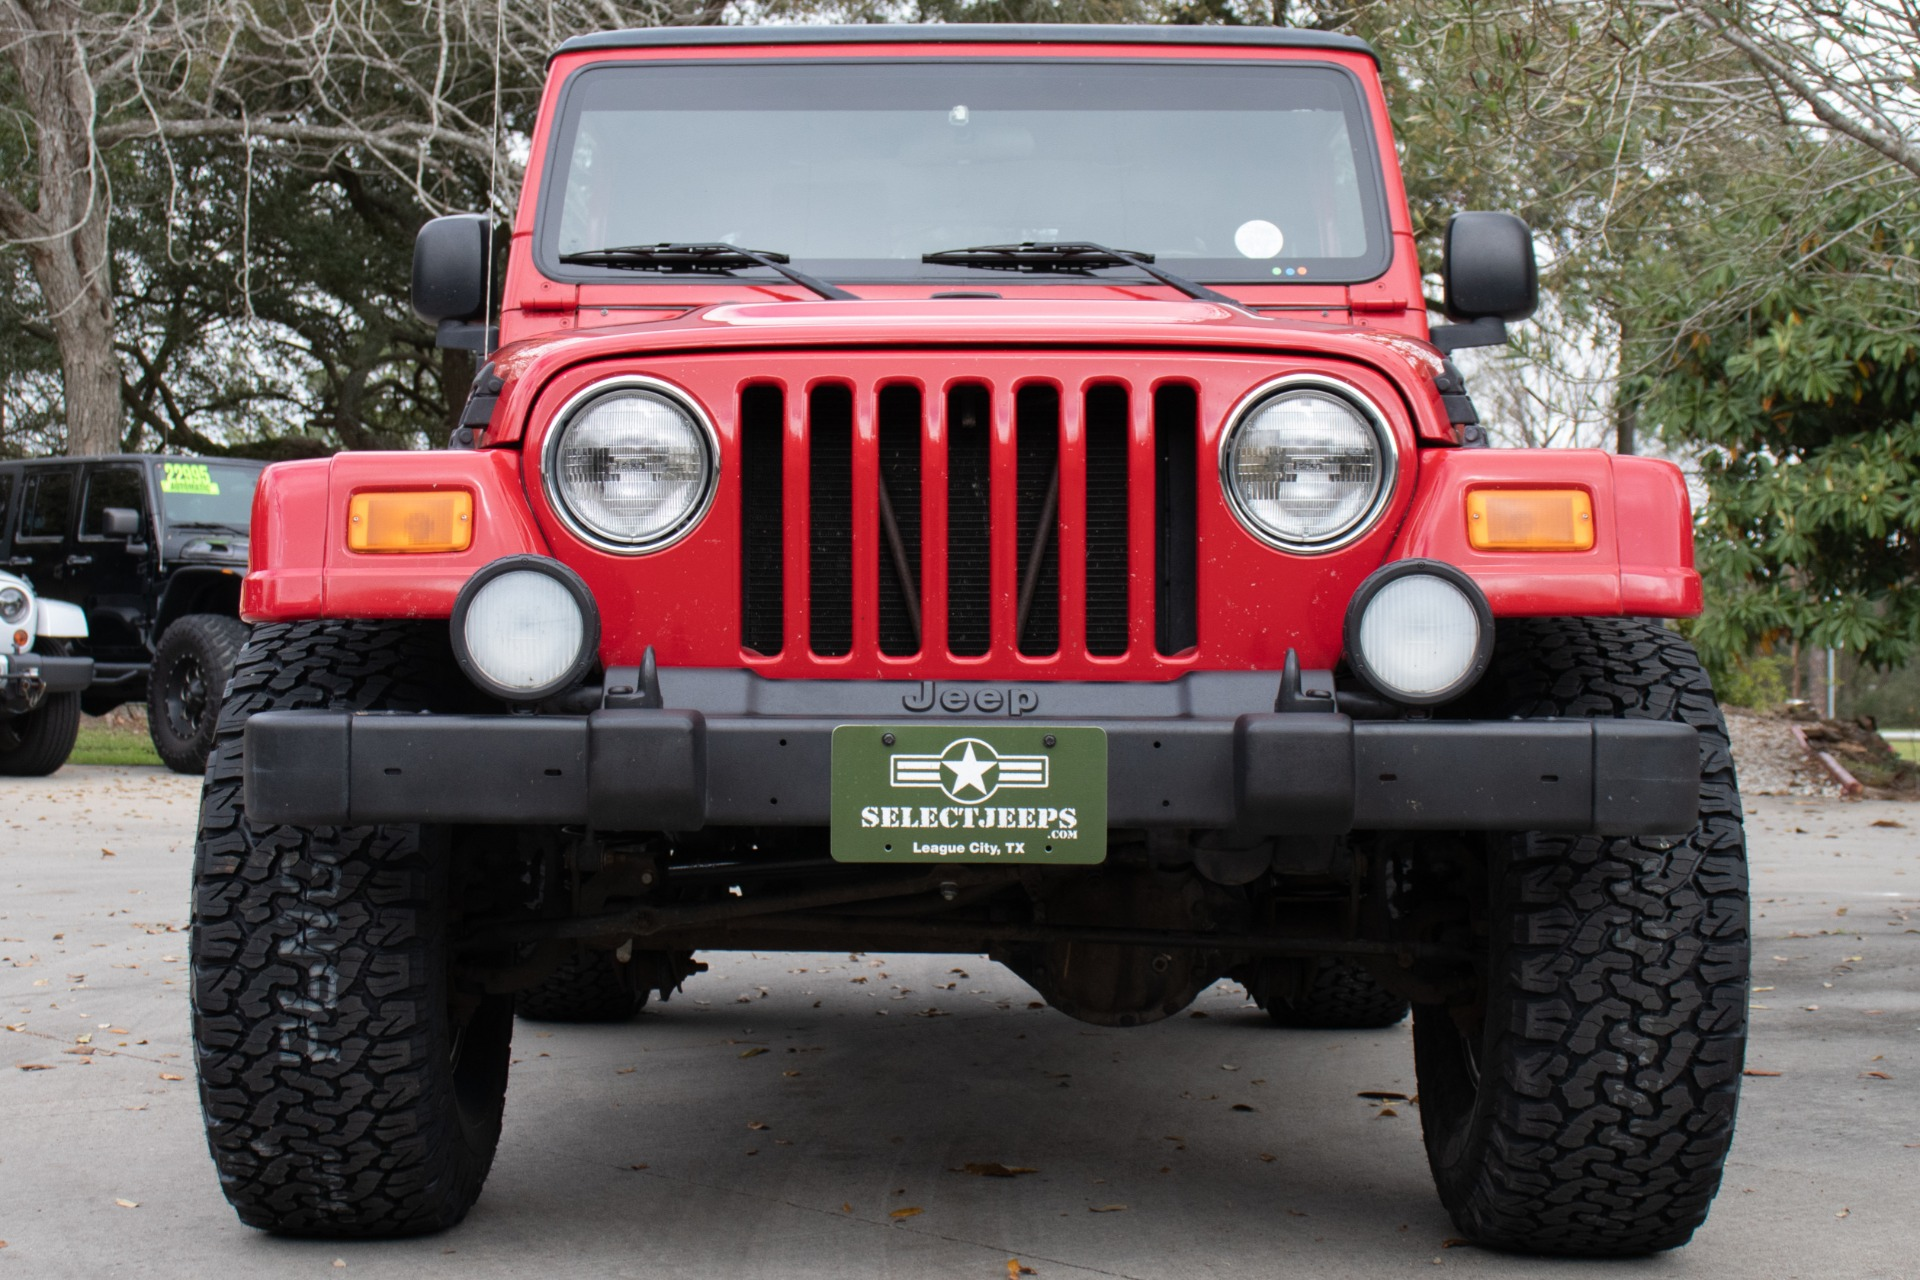 Used-2003-Jeep-Wrangler-Freedom-Edition